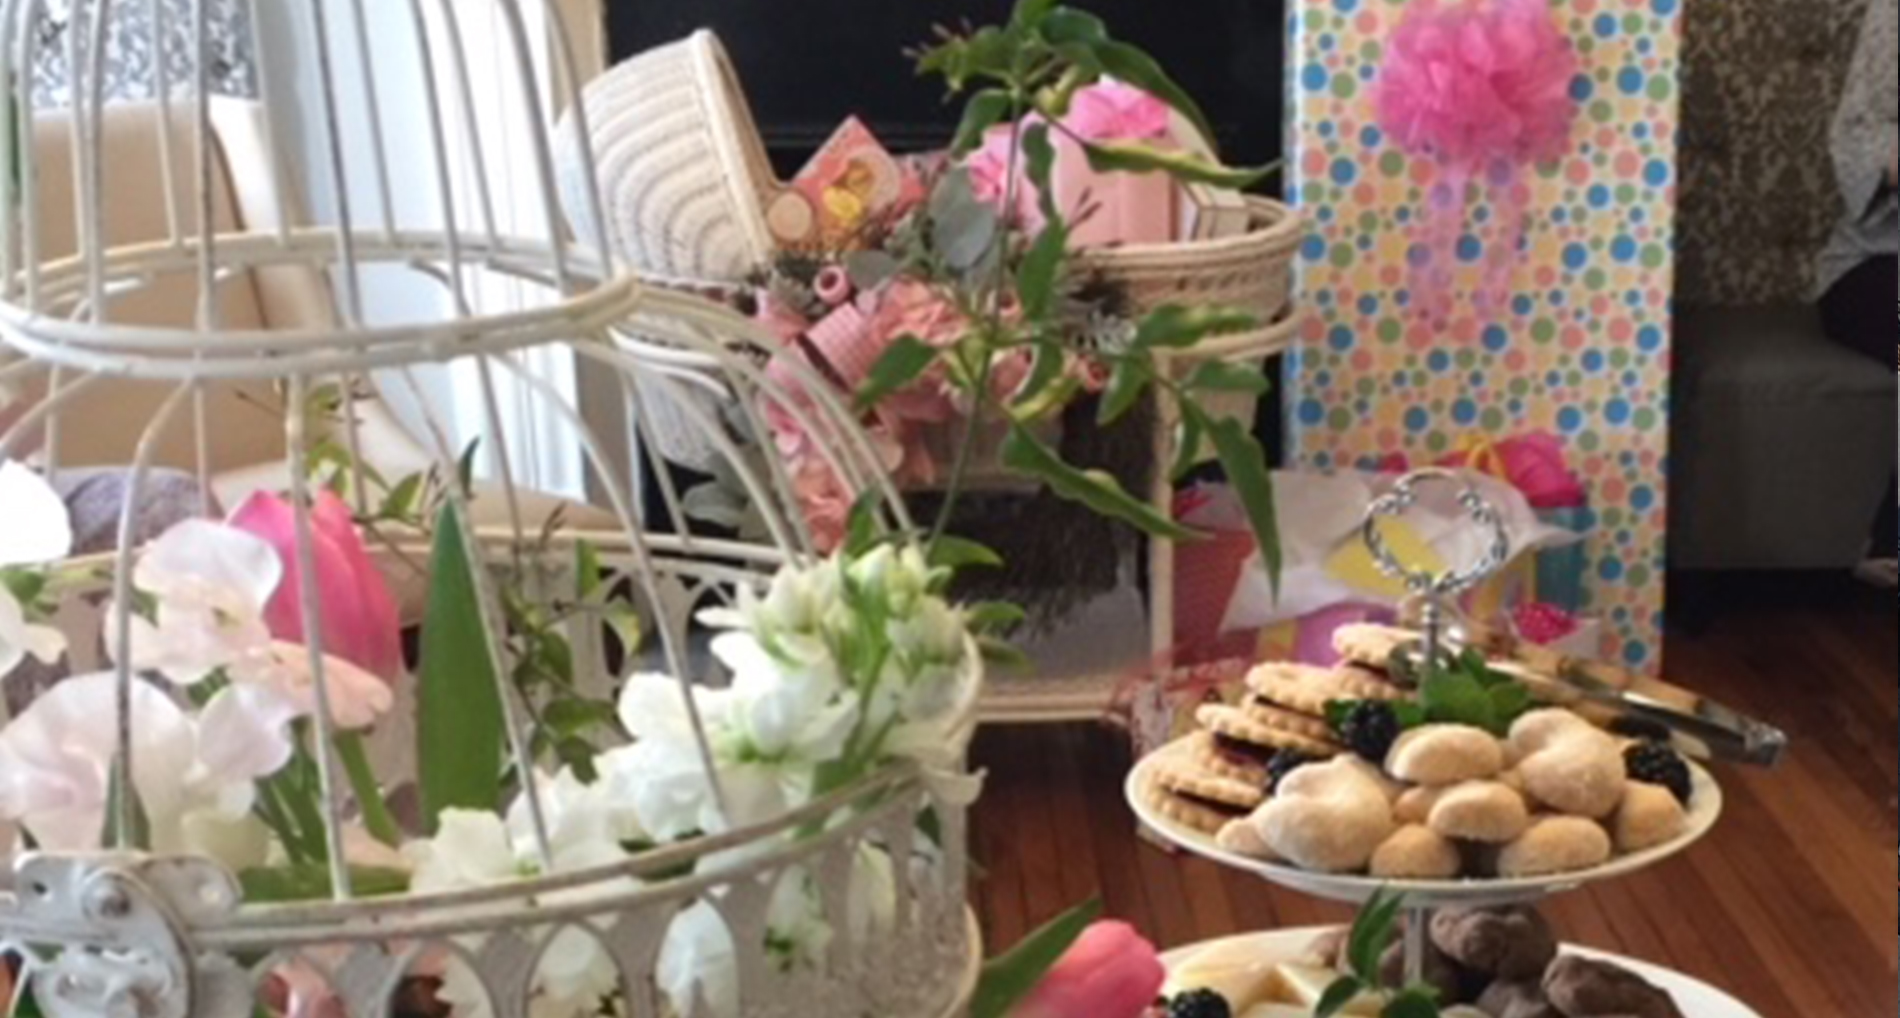 Charlottesville, Inn, Historic, Dinsmore, Farm Bell Kitchen, Private Events, Afternoon Tea